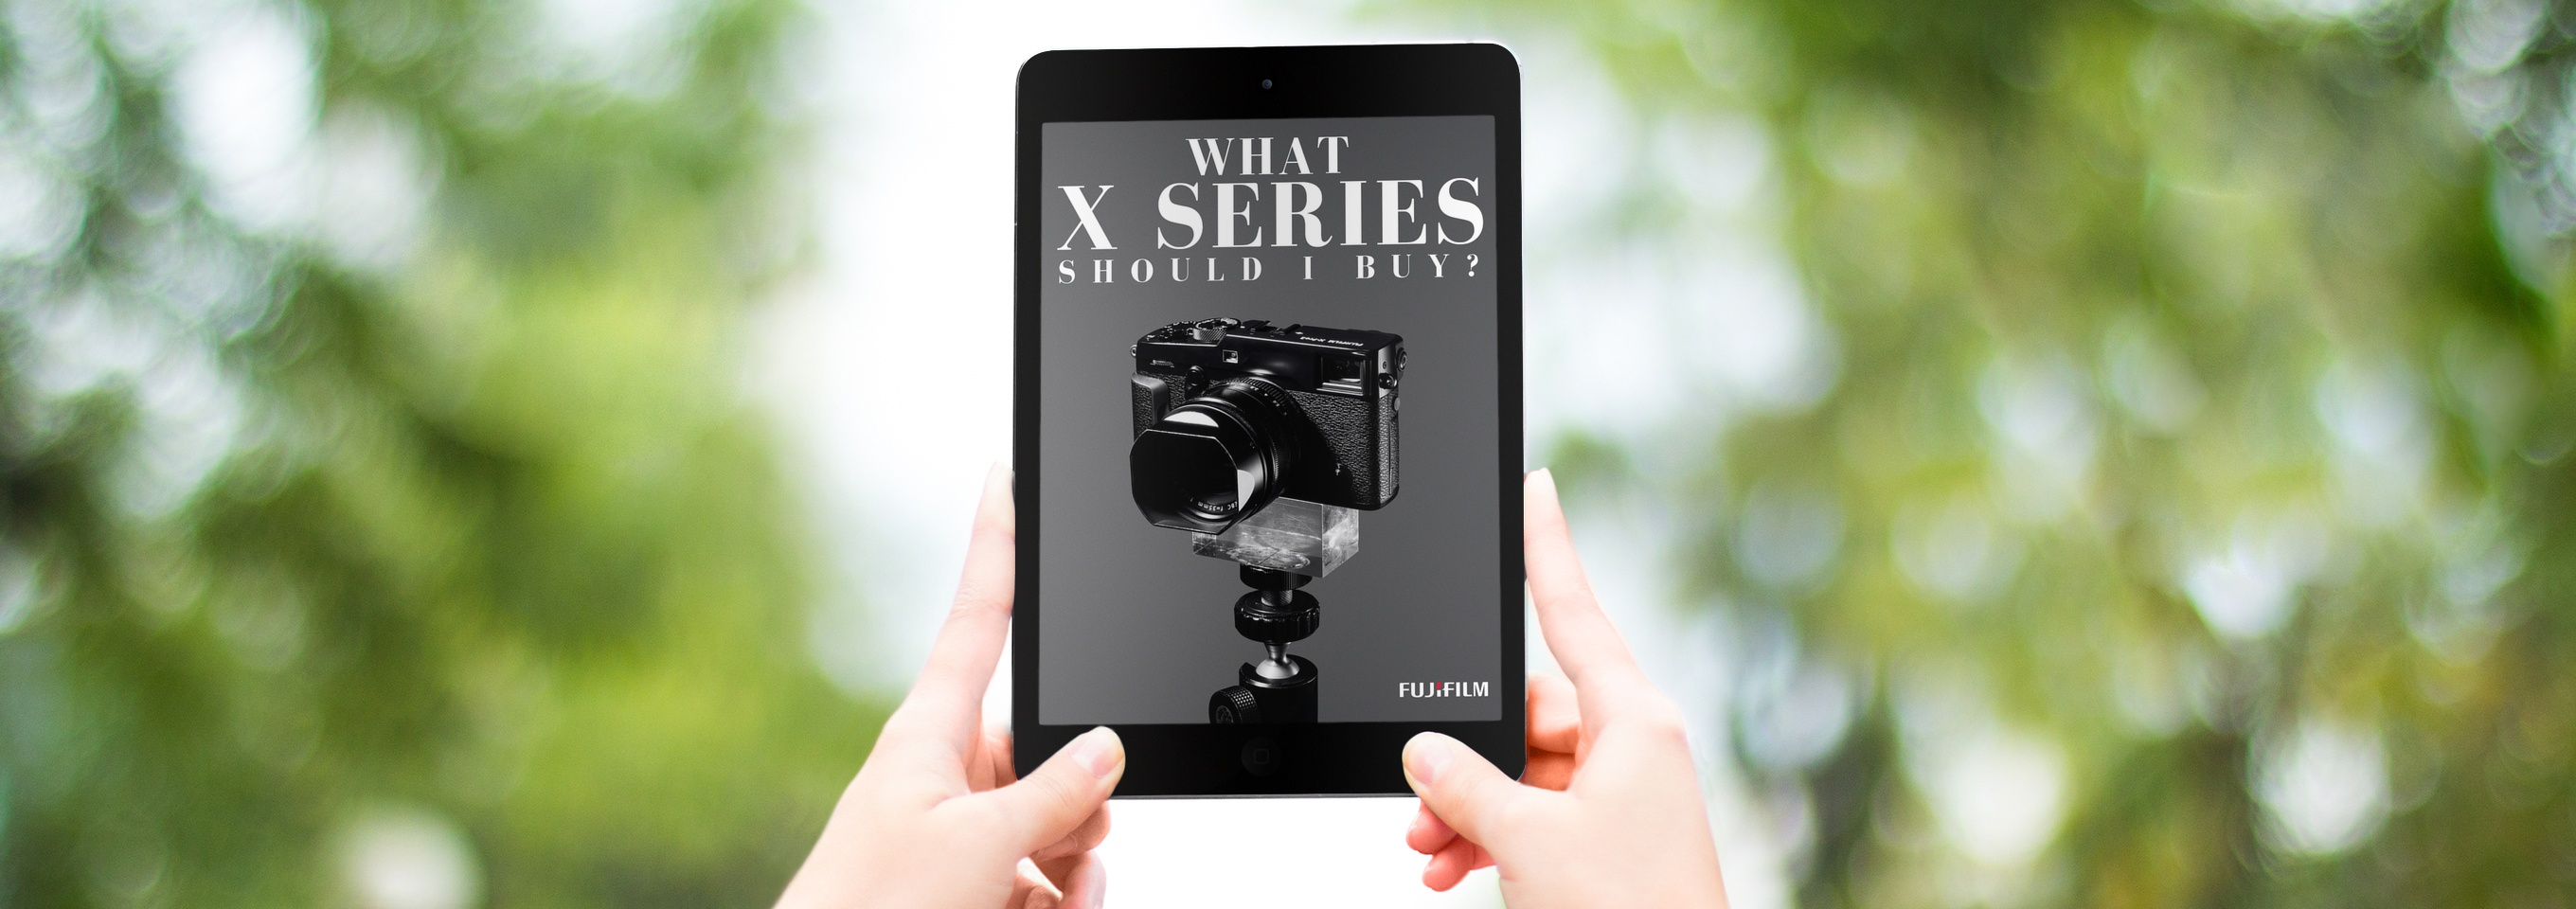 What_X_Series_Should_I_Buy_Featured_image_001